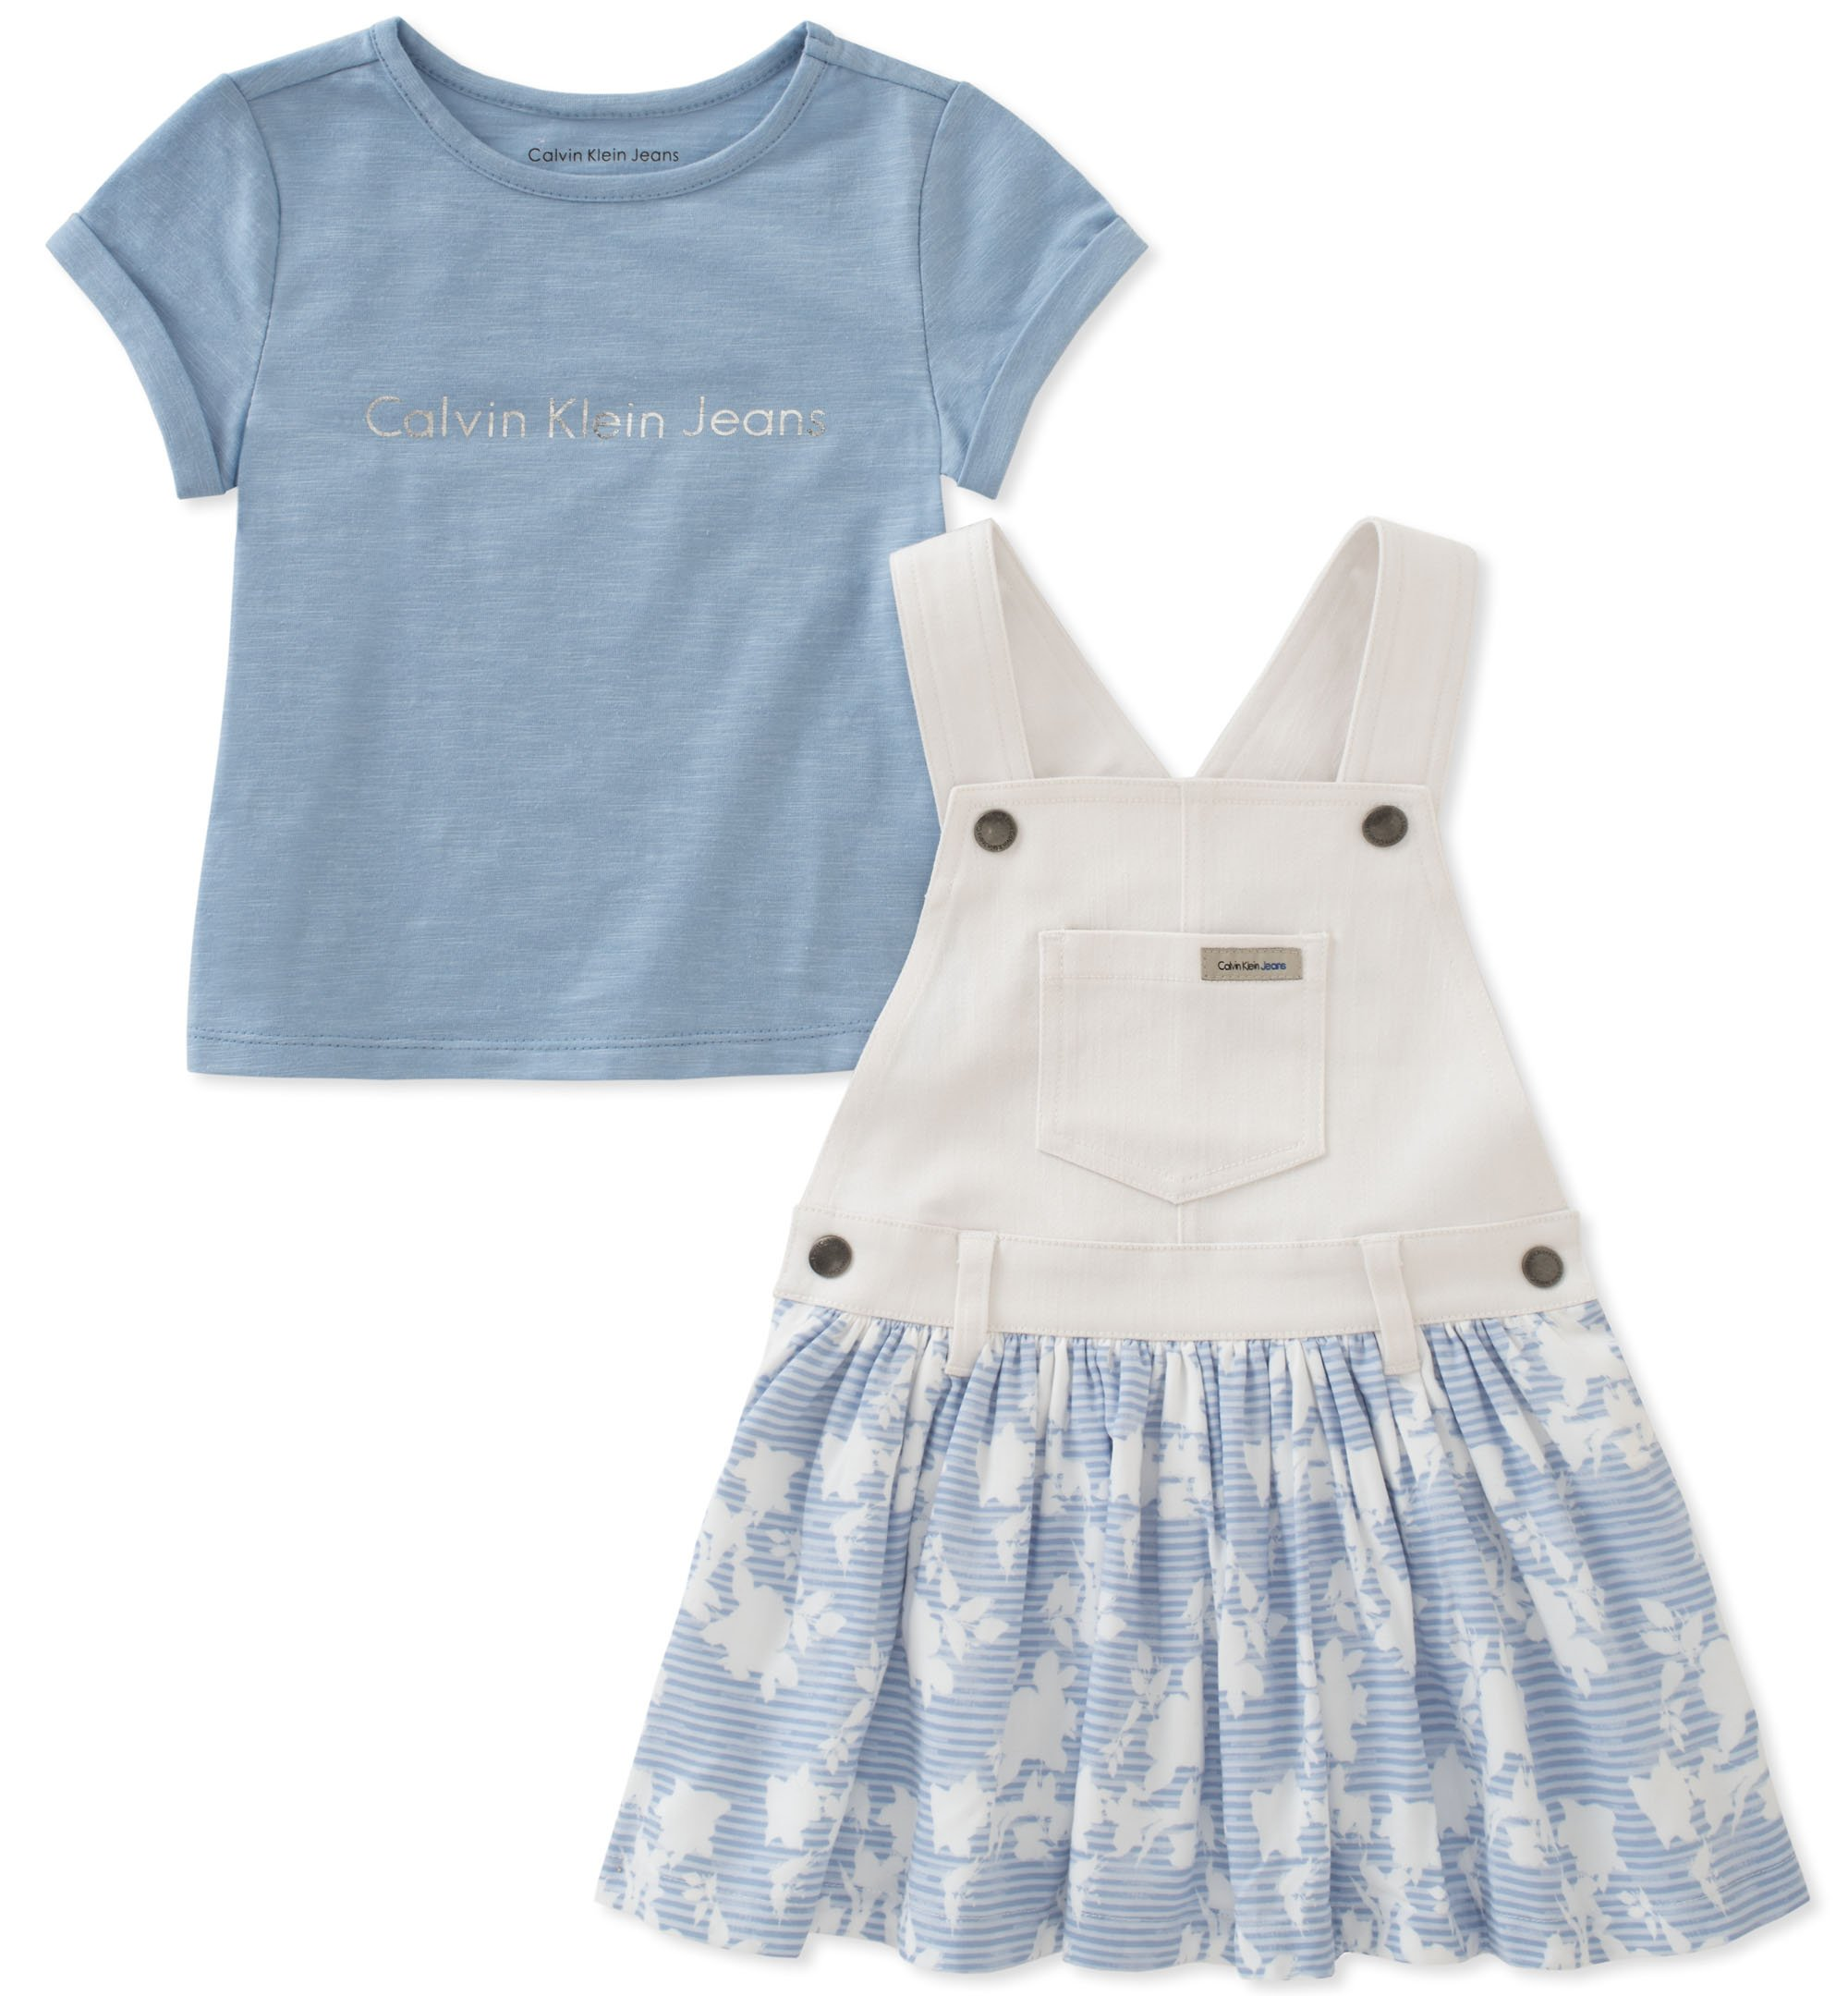 Calvin Klein Little Girls' Jumper Set, White/Blue, 6X